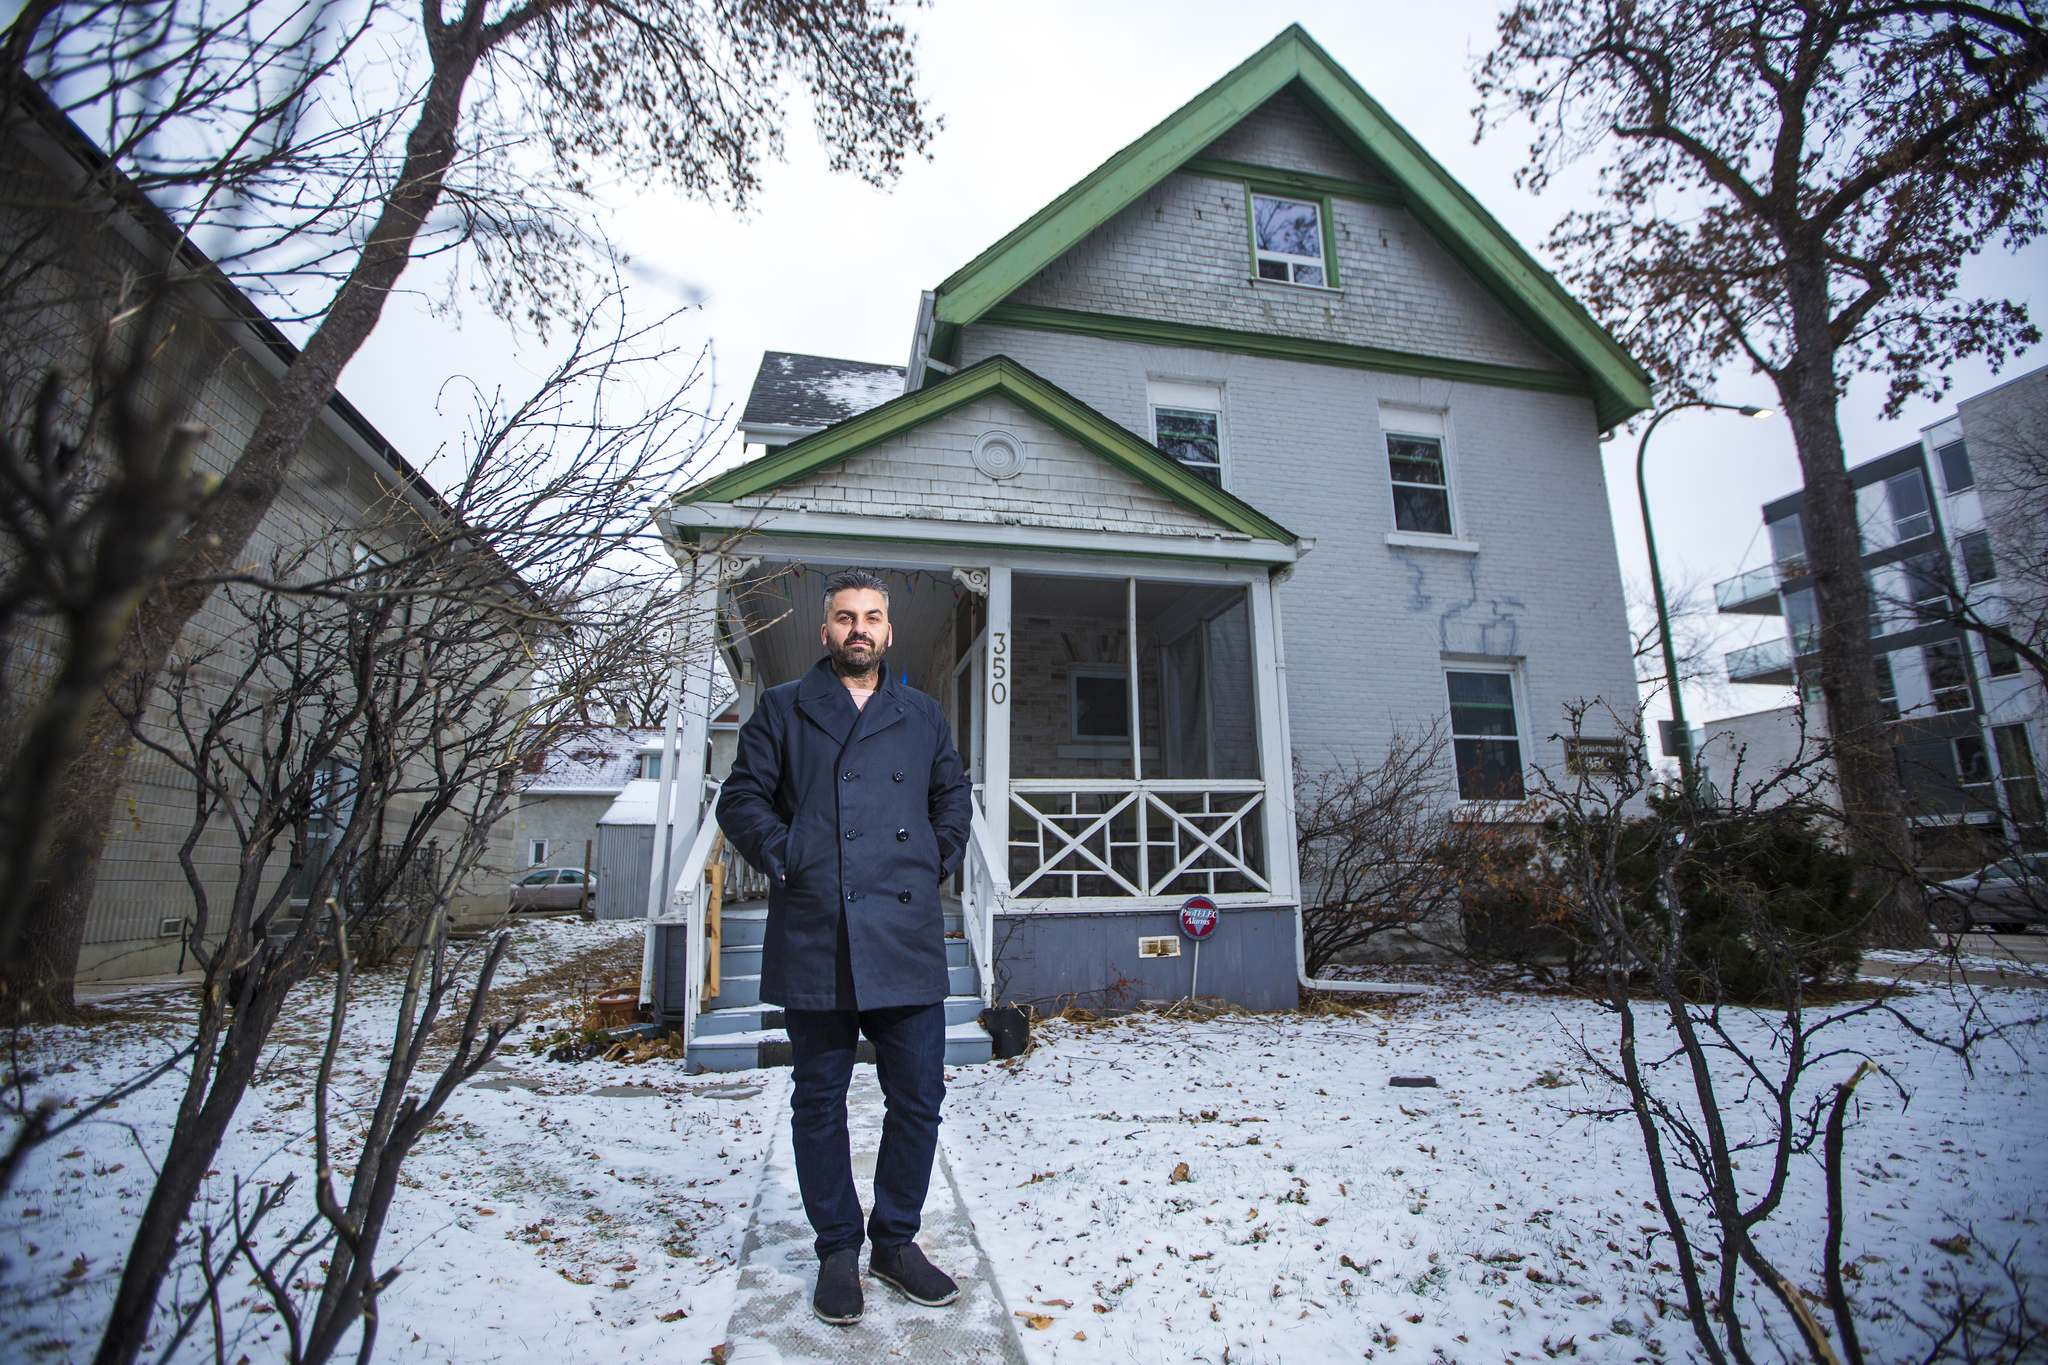 MIKAELA MACKENZIE / WINNIPEG FREE PRESS</p><p>Architect Andre Silva wants to build affordable housing at 350 River Ave. in Osborne Village. He's surprised the project garnered negative reaction.</p>